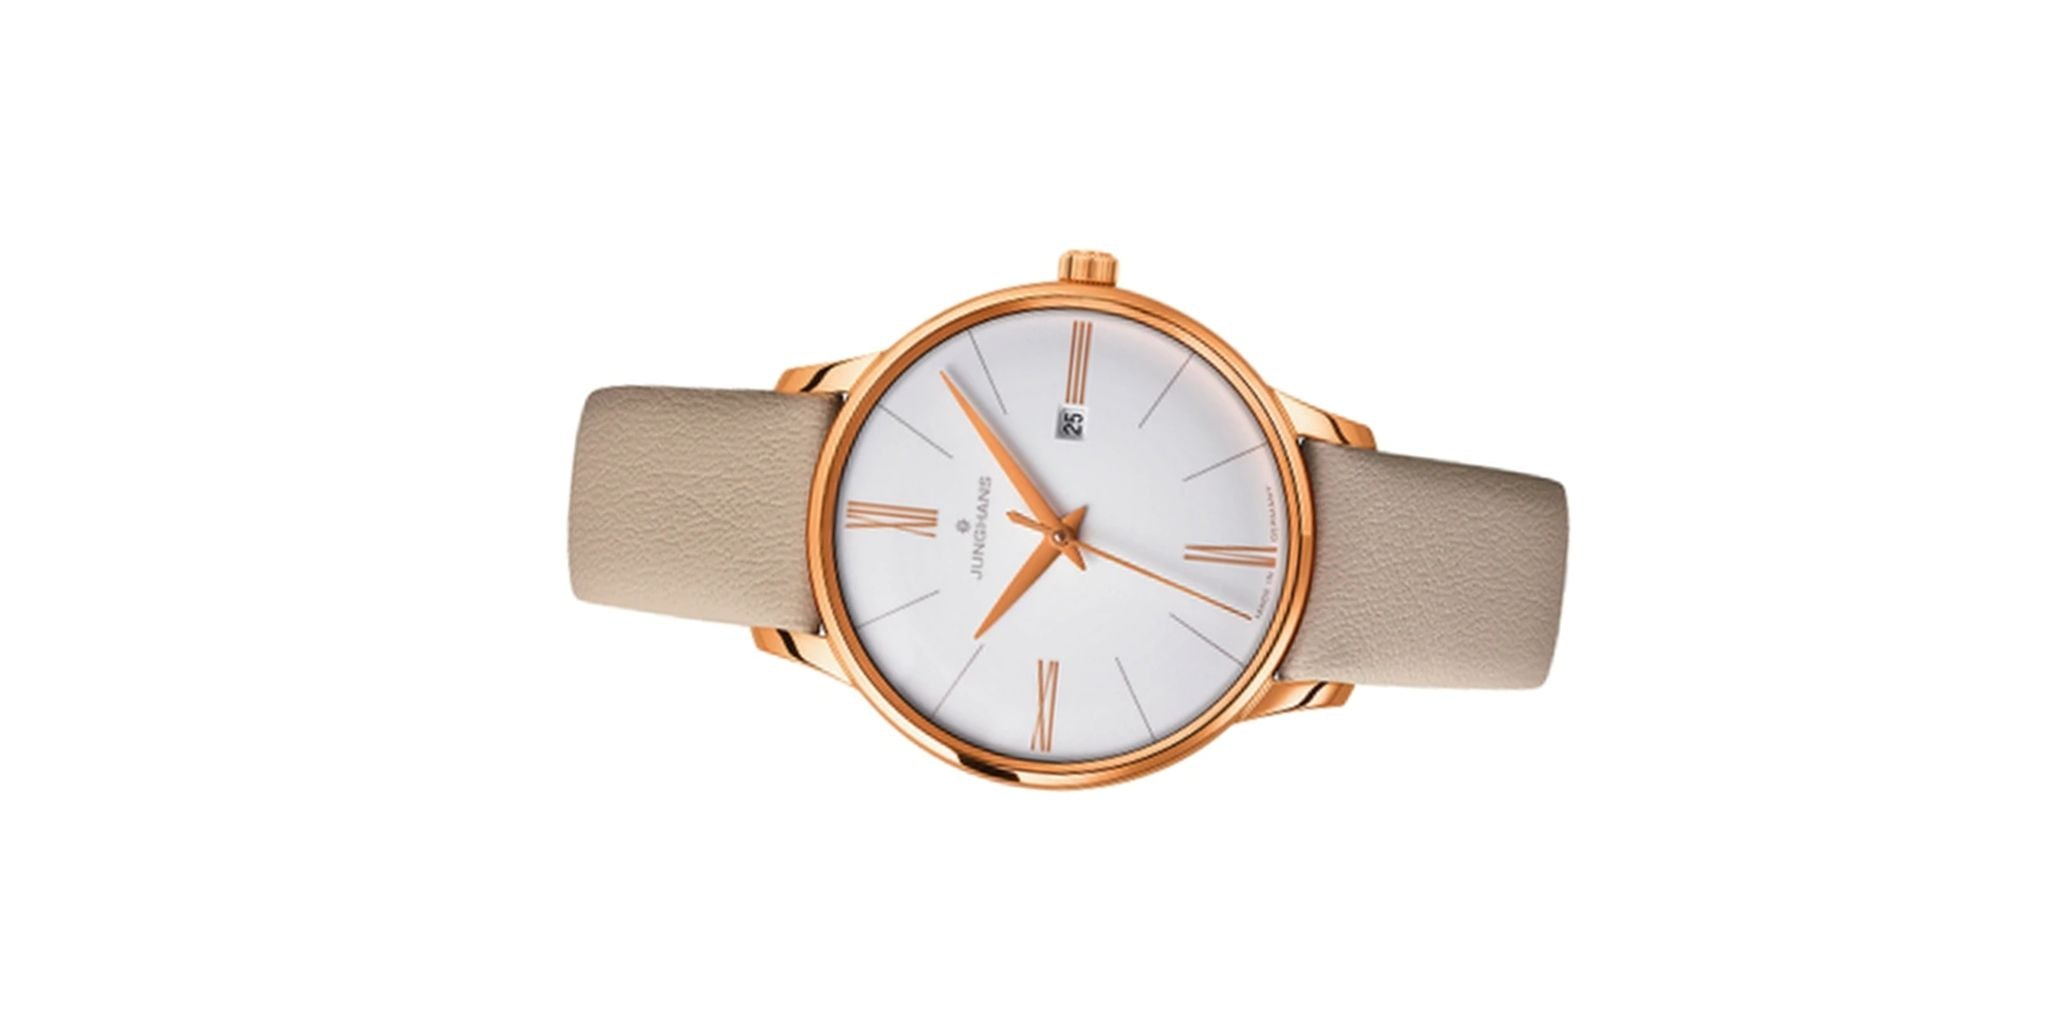 Augment your collection with a gold leather strap watch